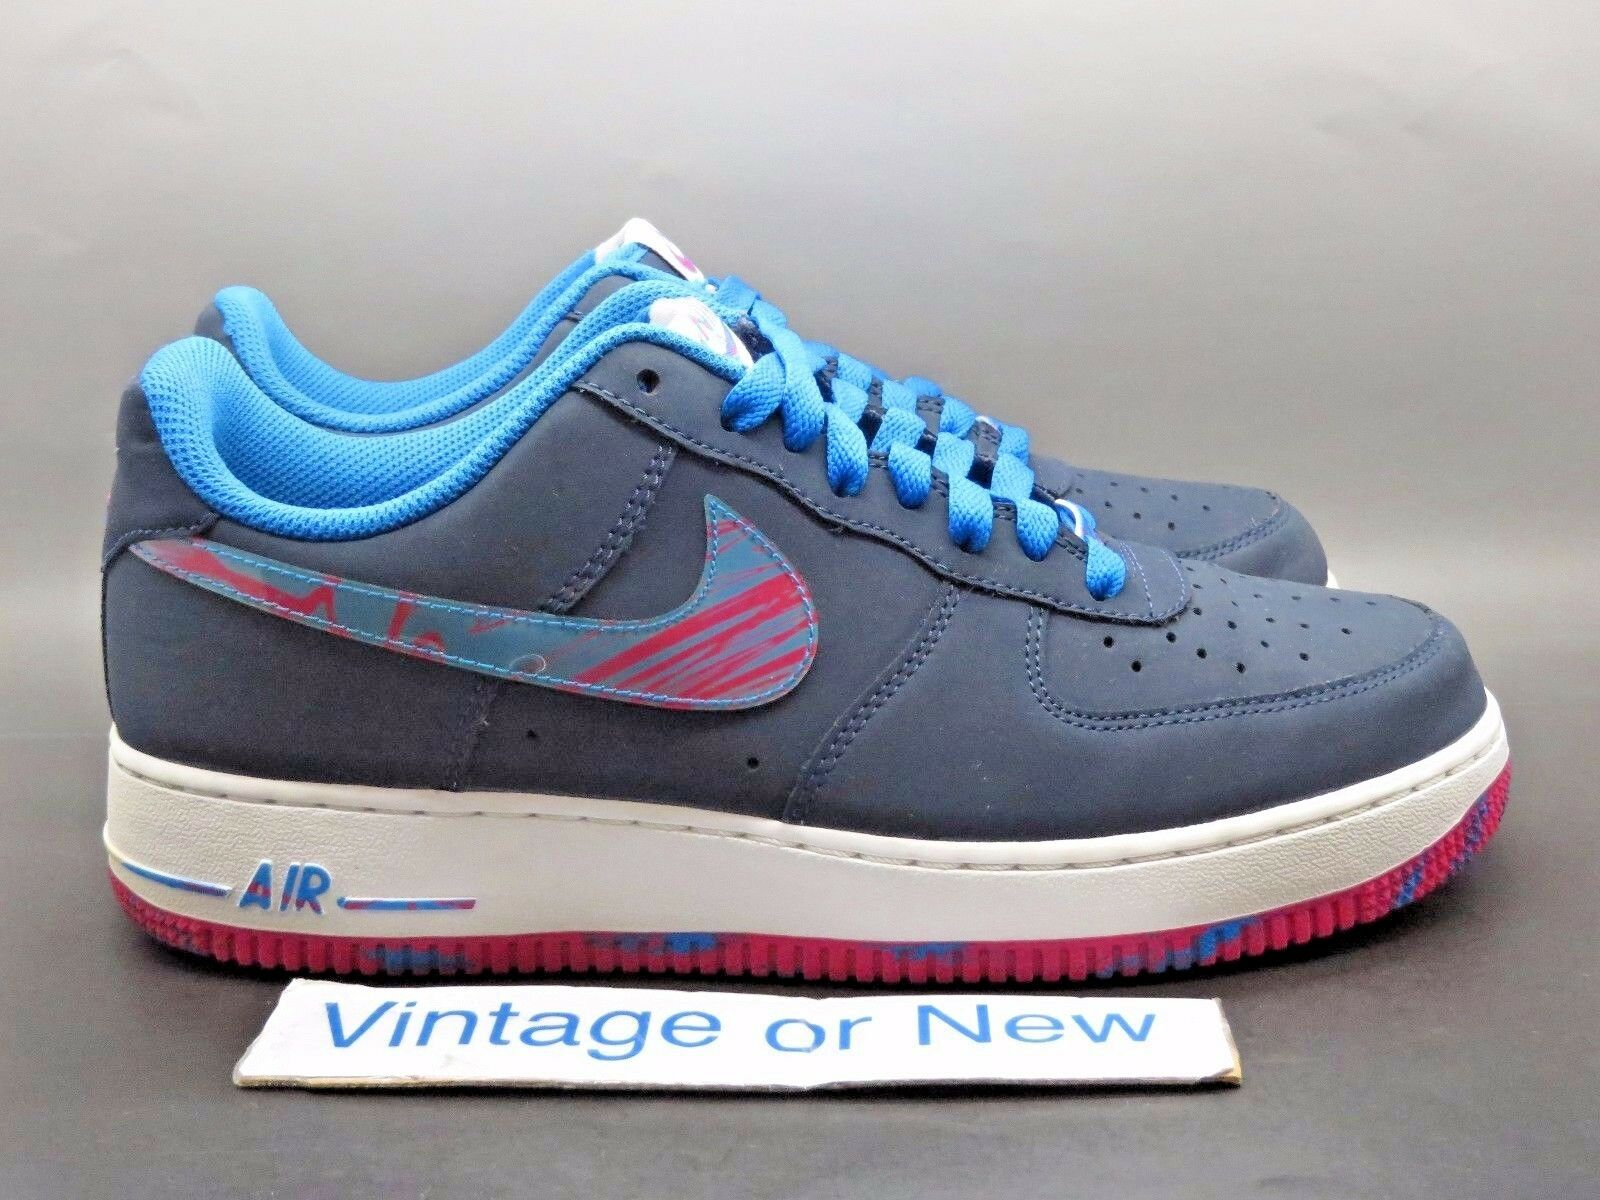 Nike Air Force 1 '07 Low Marble Pack 2014 sz 8.5